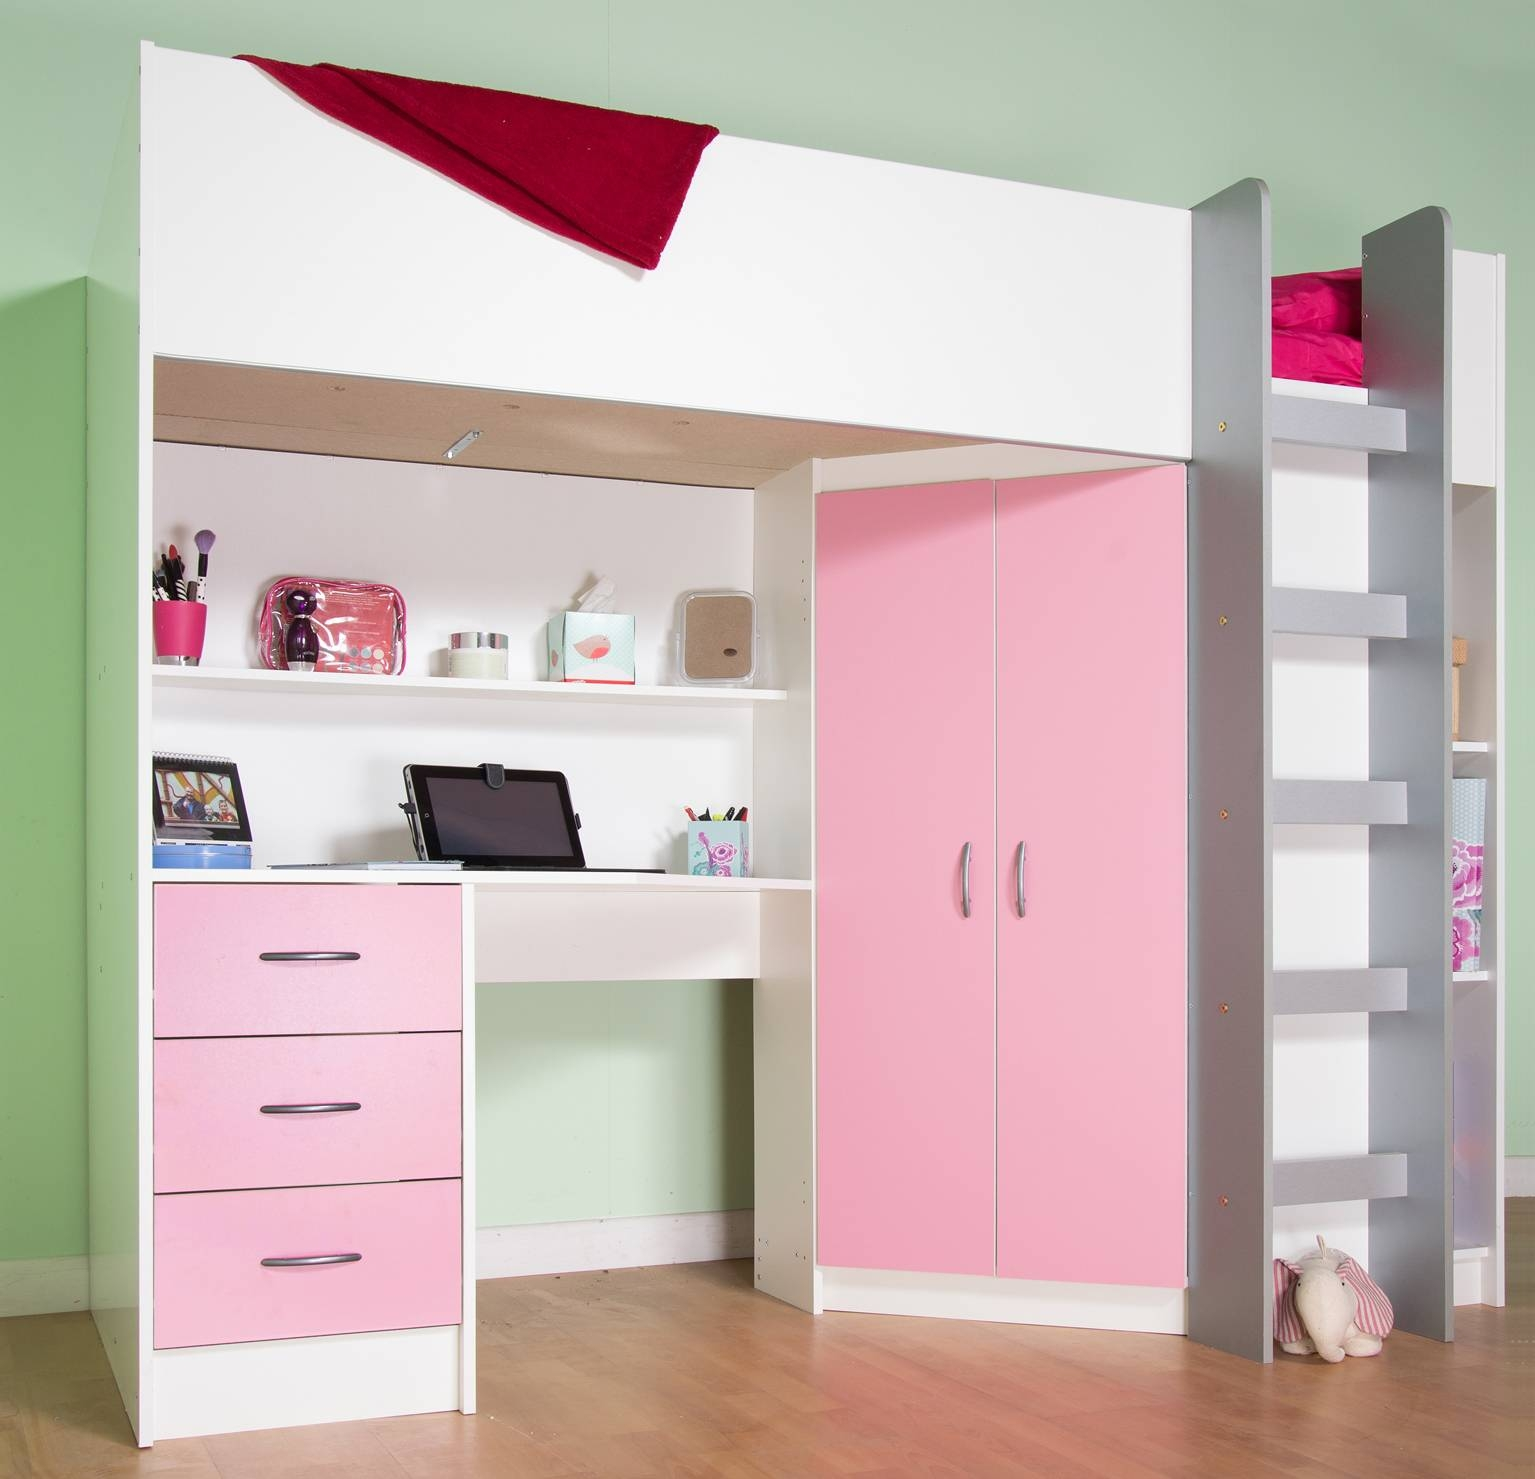 Cheap Cabin Beds With Desk | Kts-S intended for High Sleeper With Desk and Sofa Bed (Image 4 of 30)